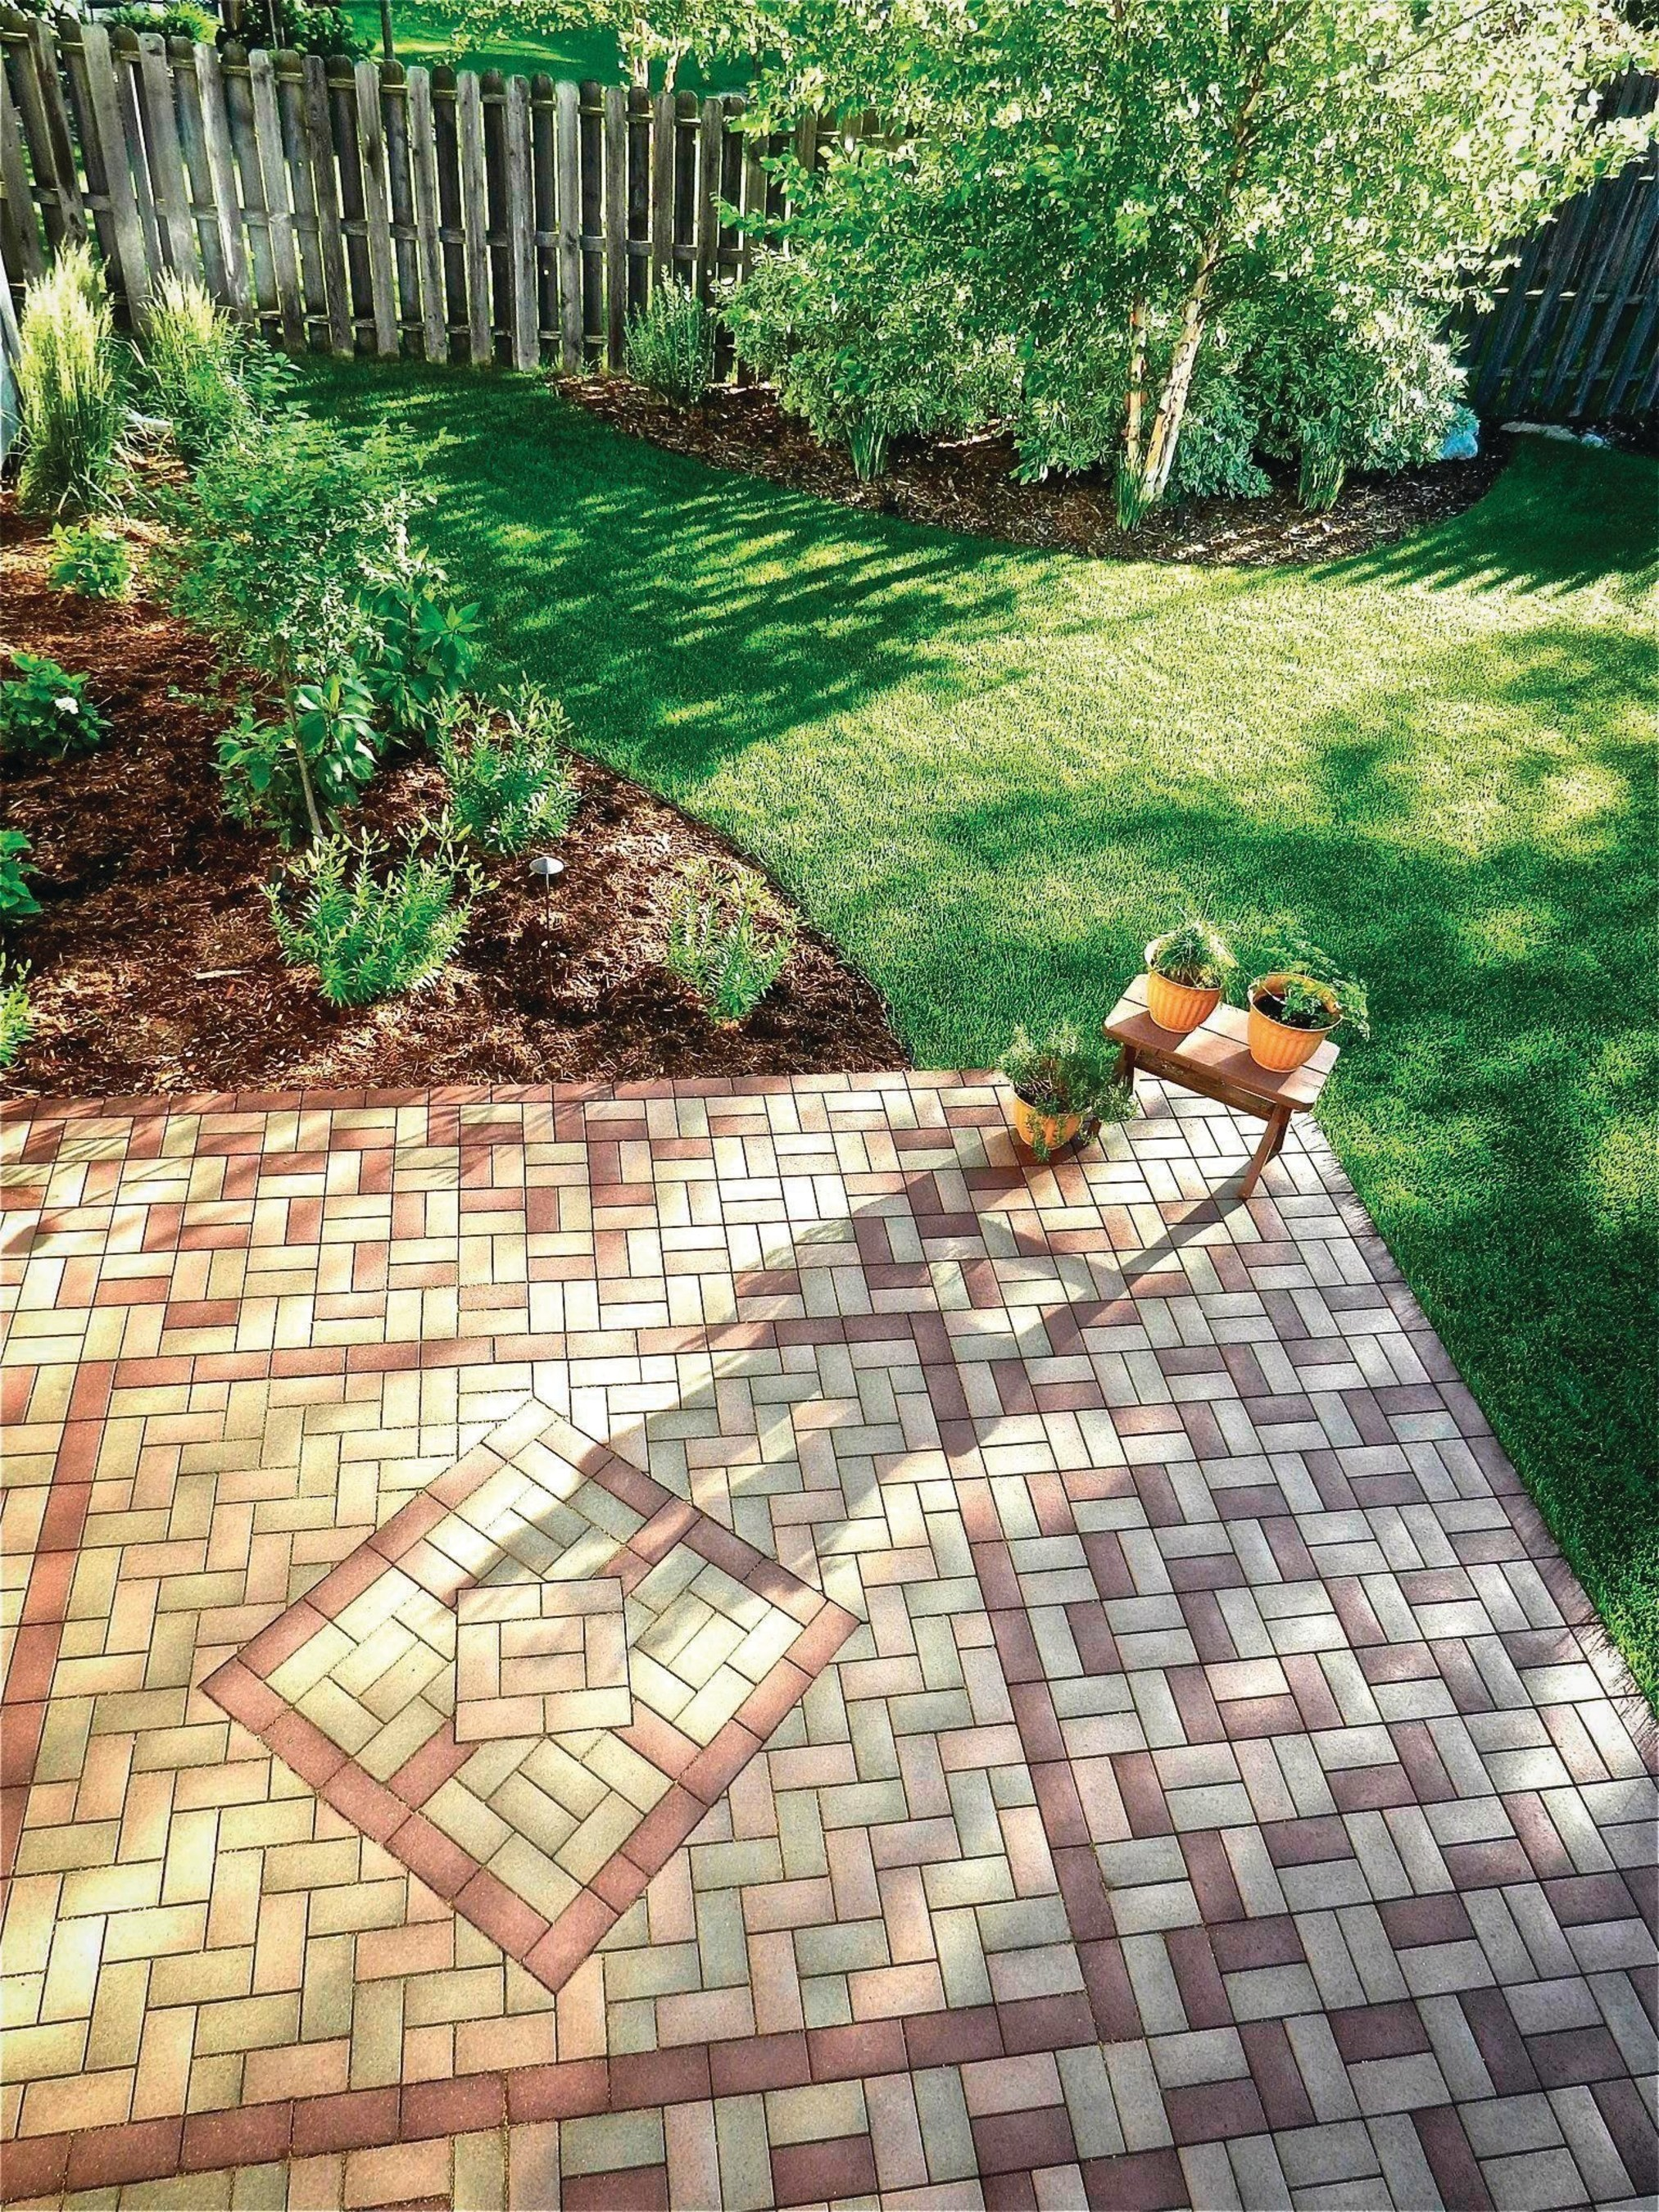 AZEK(R) Pavers, as seen in this photo, celebrates recycling more than 25 million pounds of scrap for Earth Day.